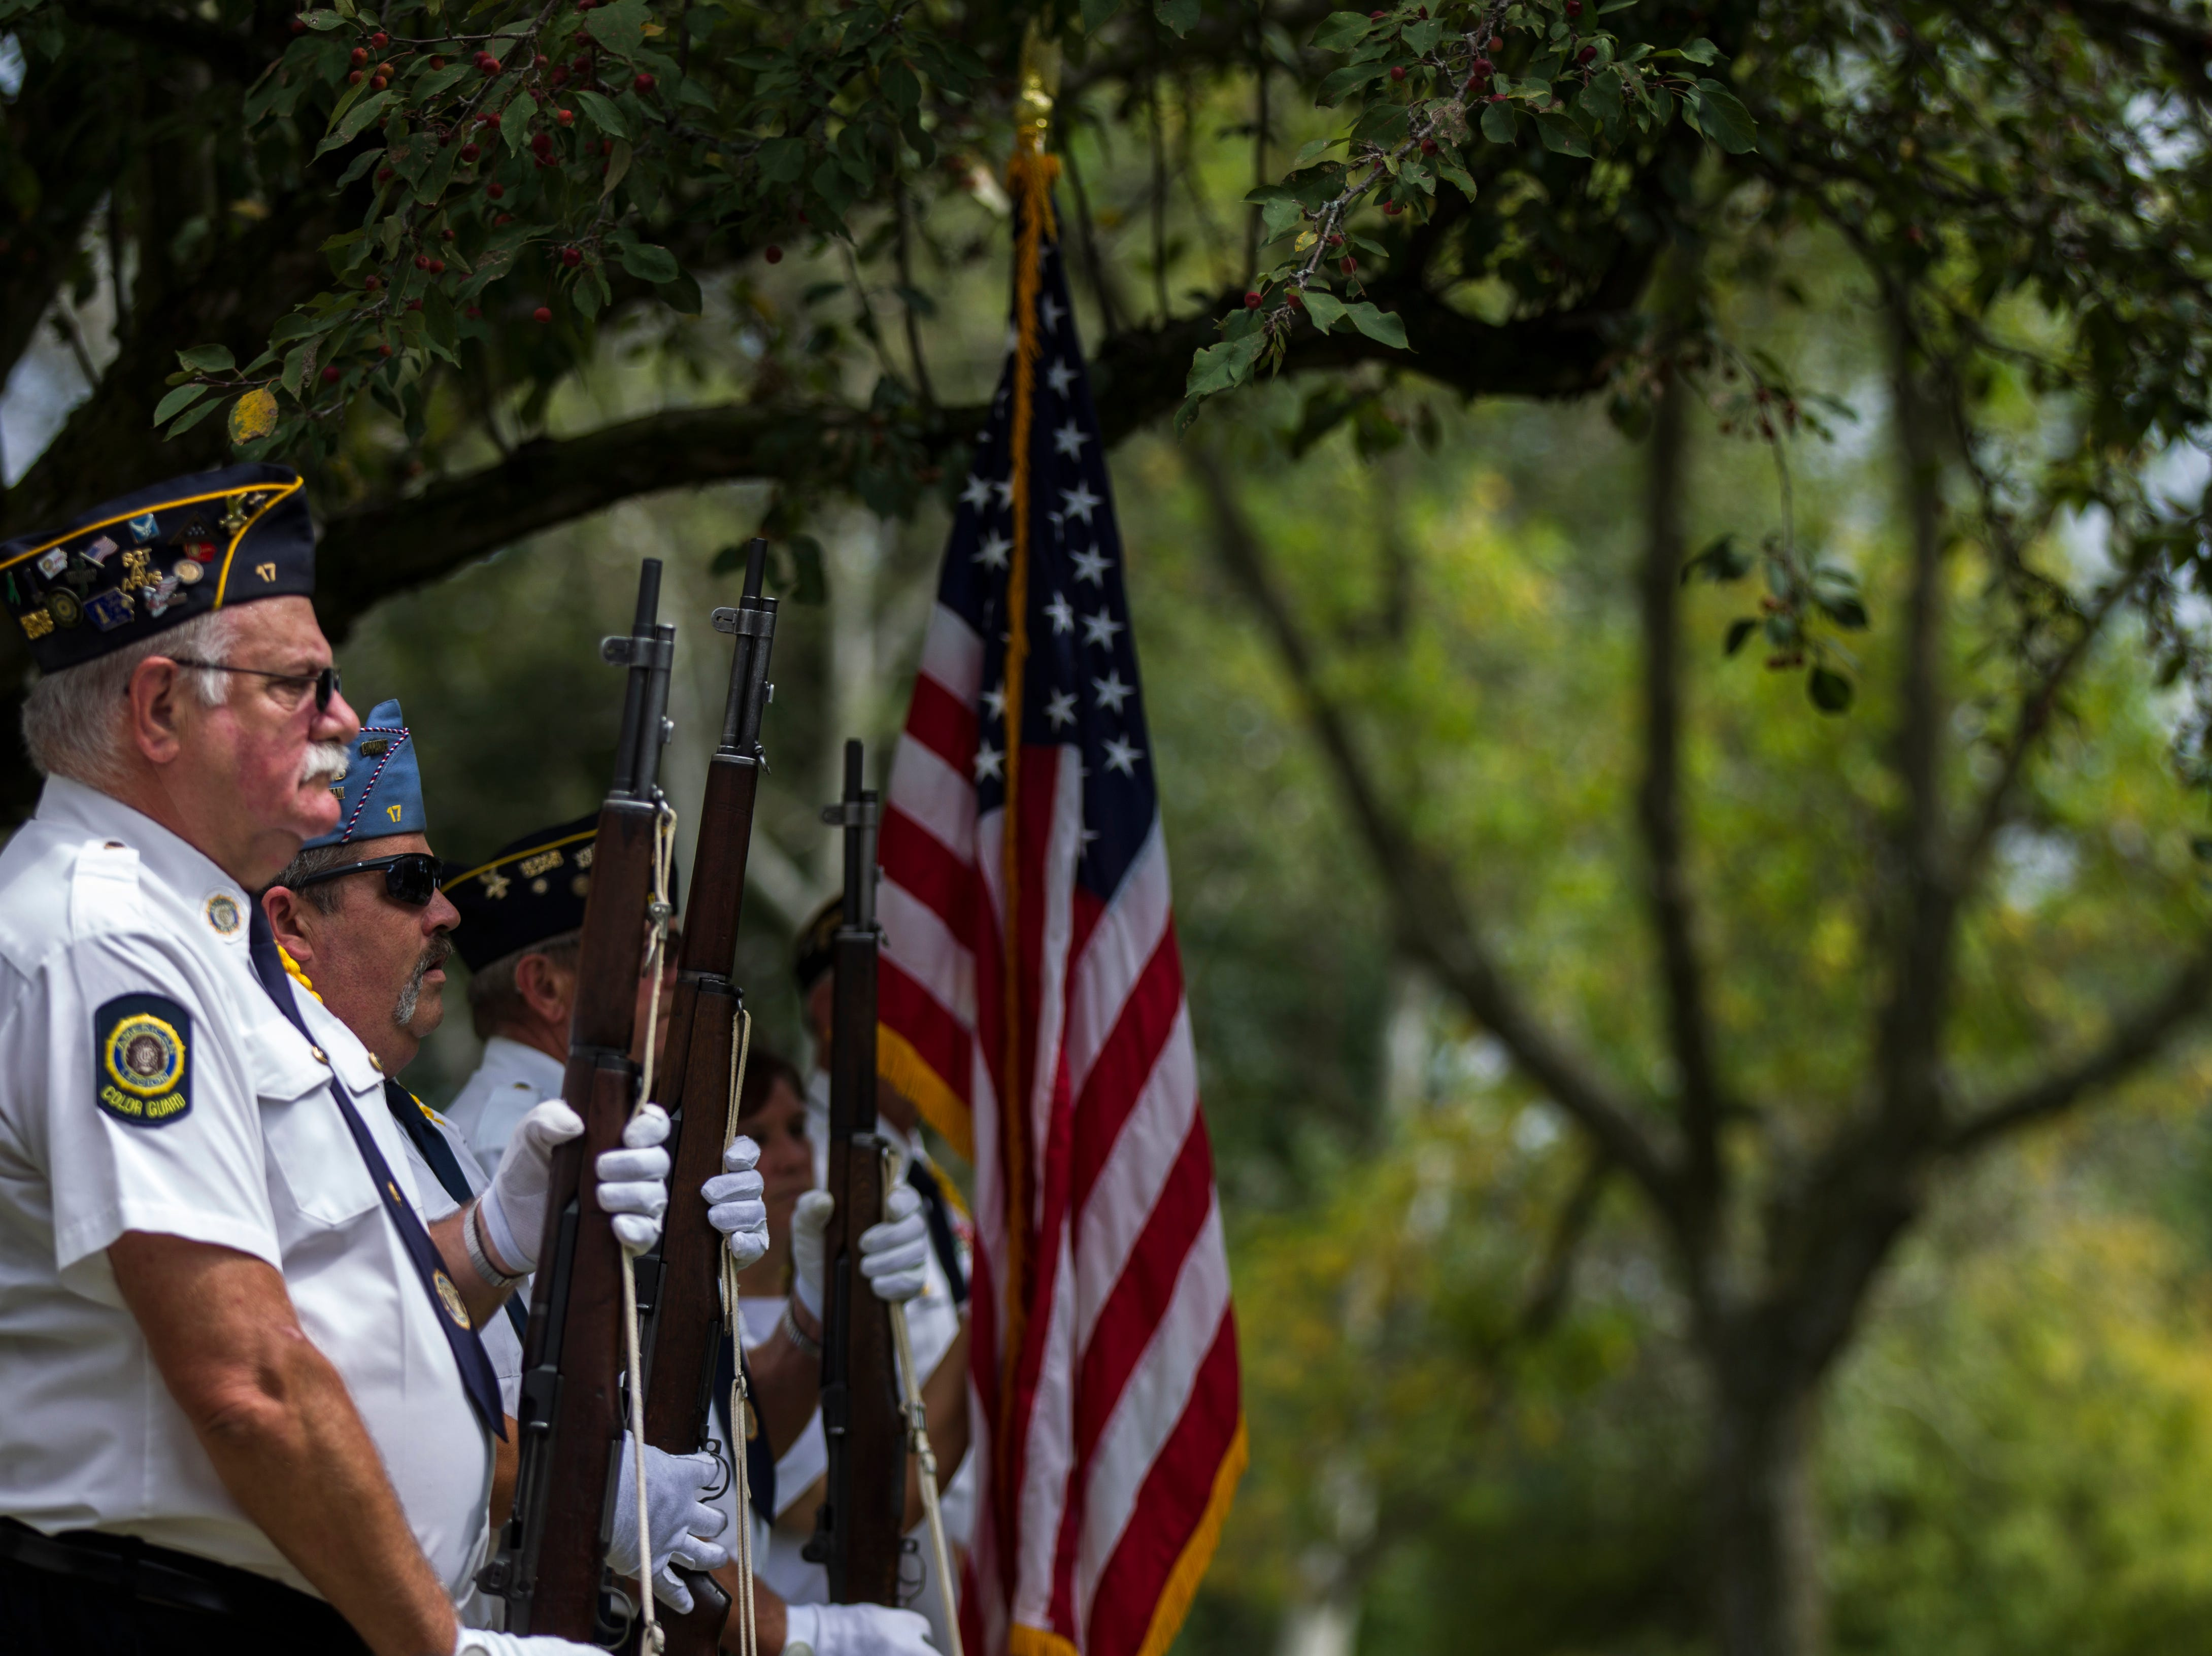 Members of the Iowa City American Legion Post 17 and Coralville Post 721 stand before performing a 21-gun salute during a dedication ceremony on Monday, Sept. 3, 2018, at the Autumn Park Apartments in Iowa City.